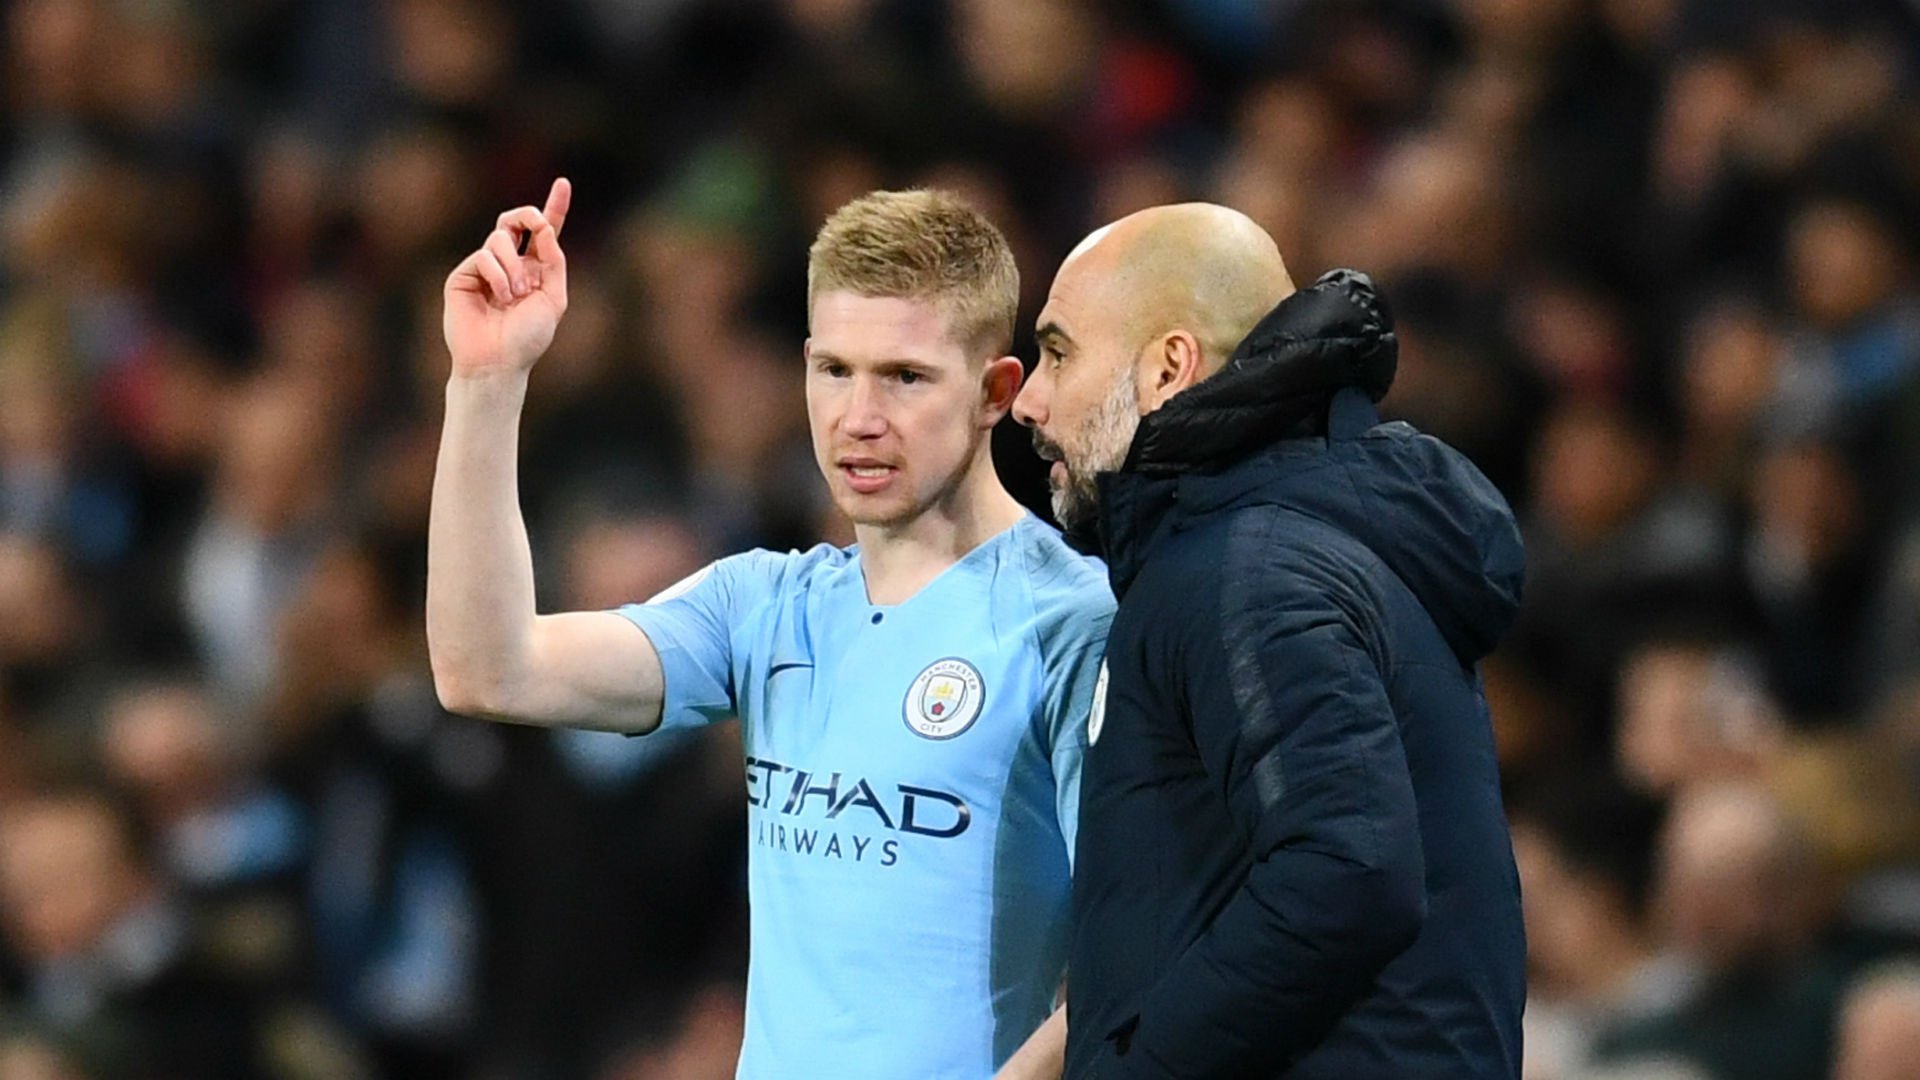 De Bruyne will challenge himself - Guardiola says he can do little to improve 'exceptional' City star